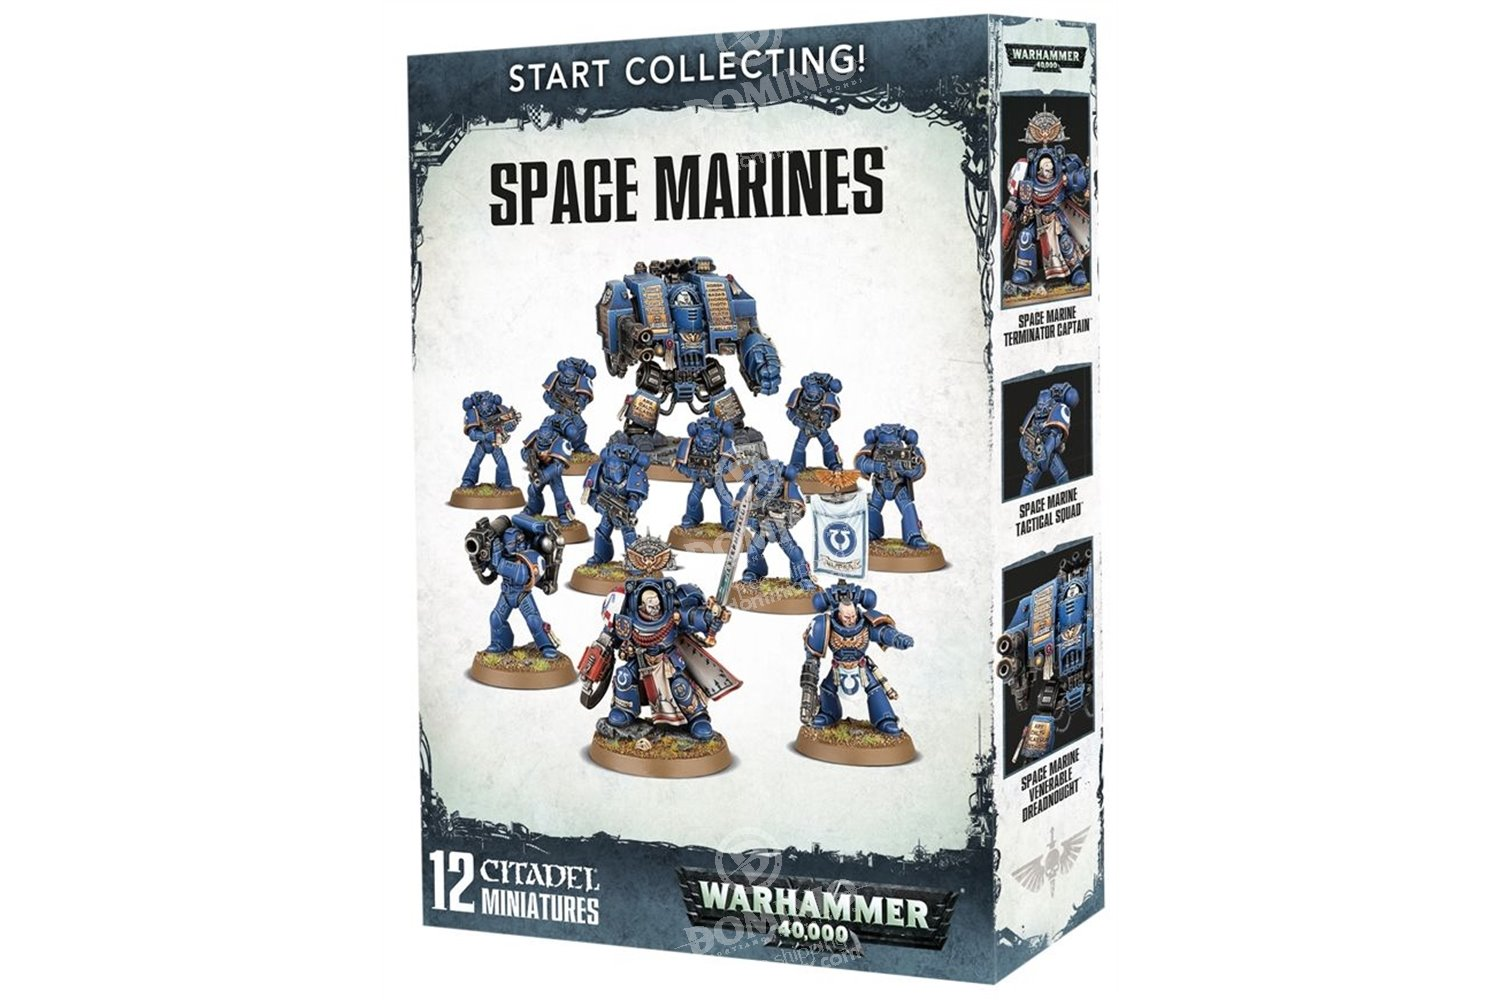 SPACE MARINE - START COLLECTING